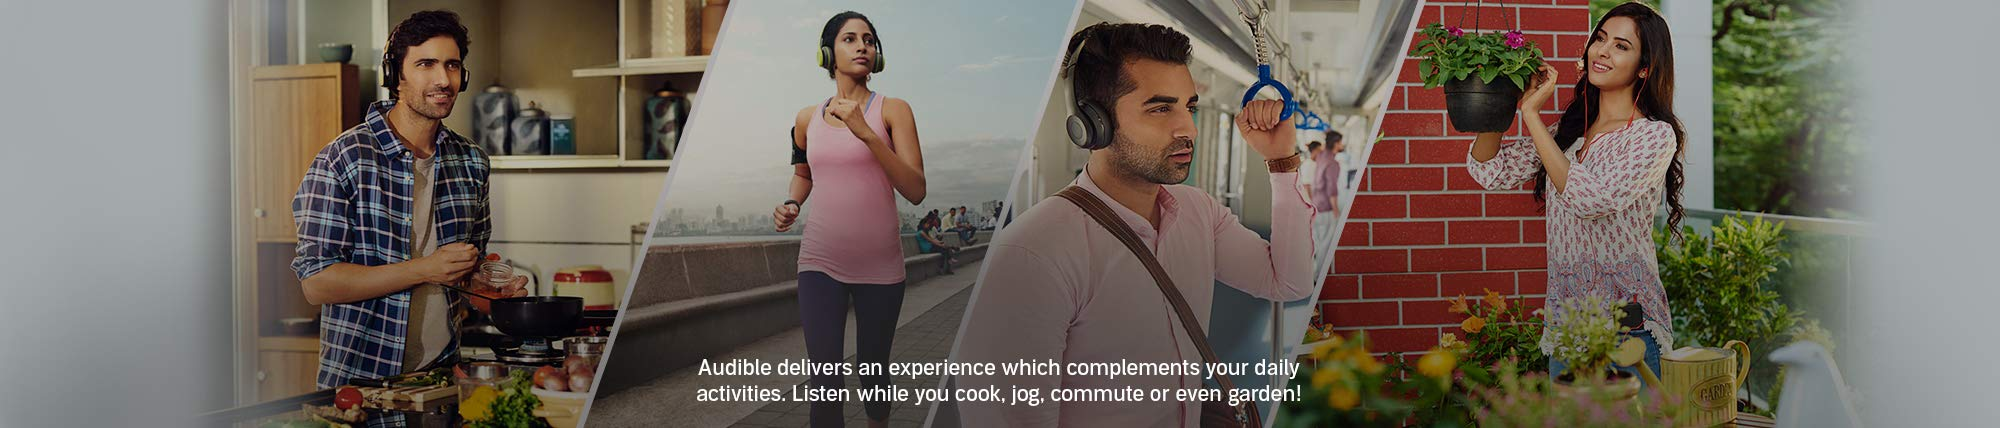 Audible delivers an experience which complements your daily activities. Listen while you cook, jog or commute.